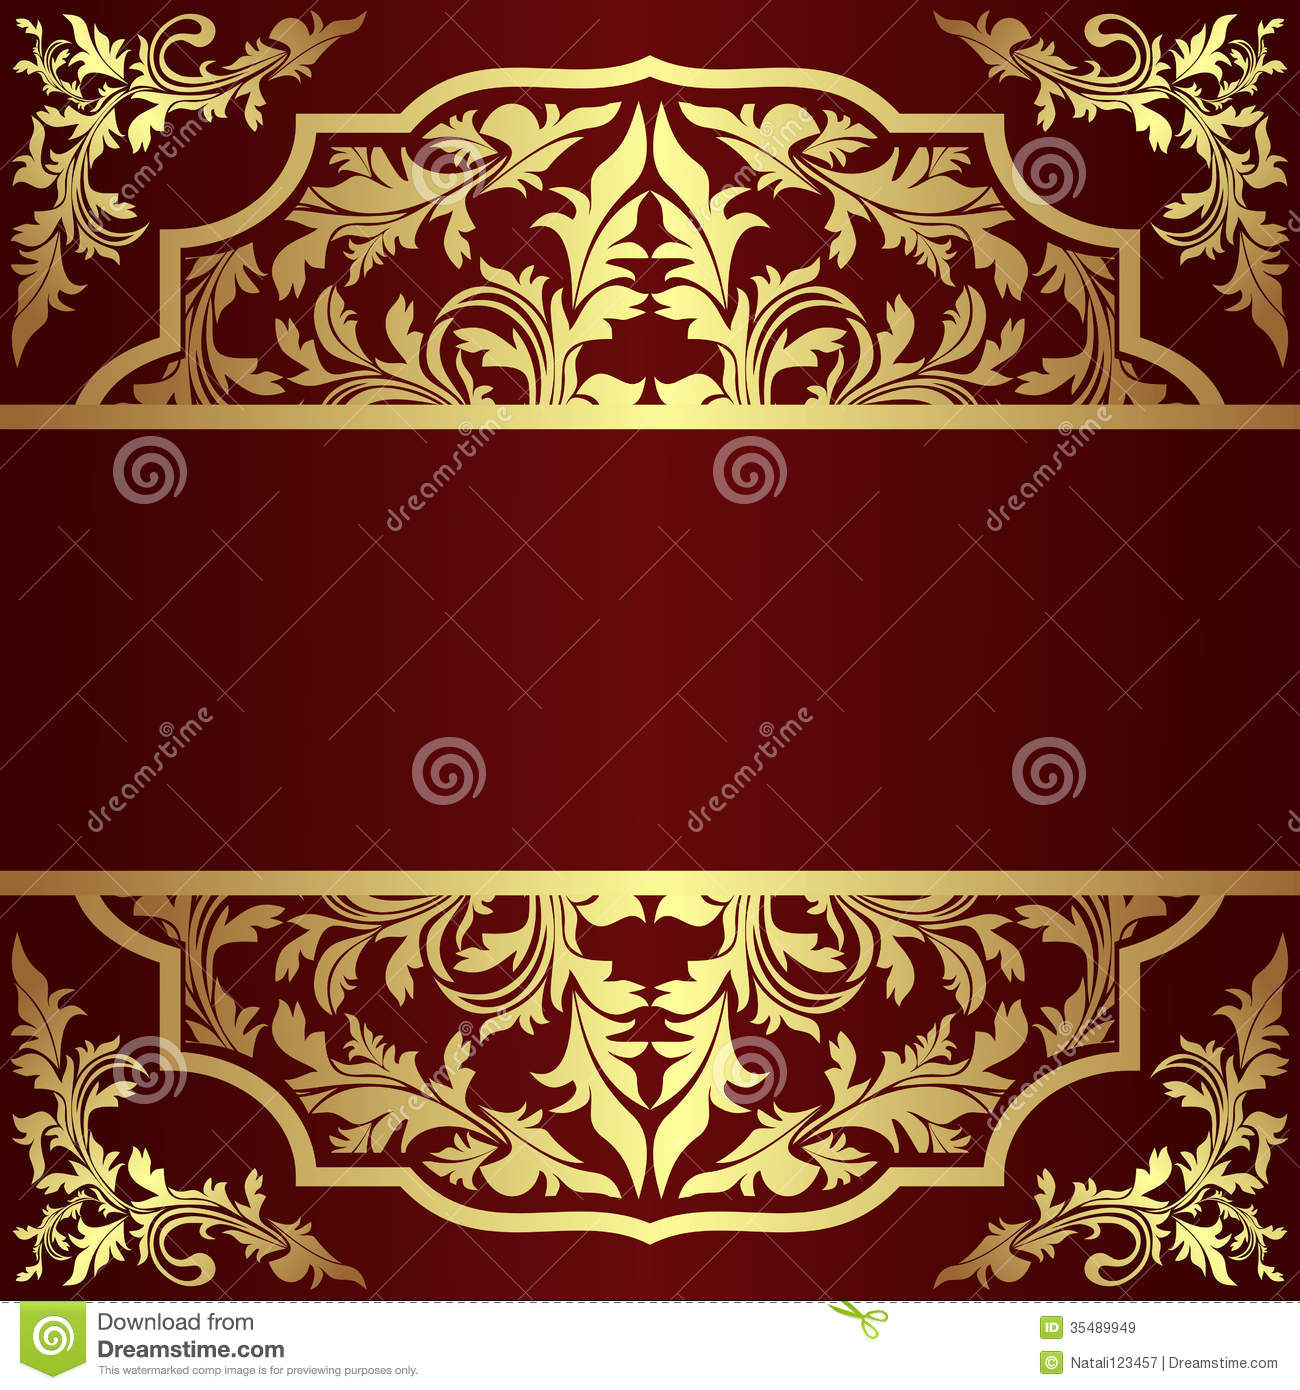 royal blue and gold damask wallpaper